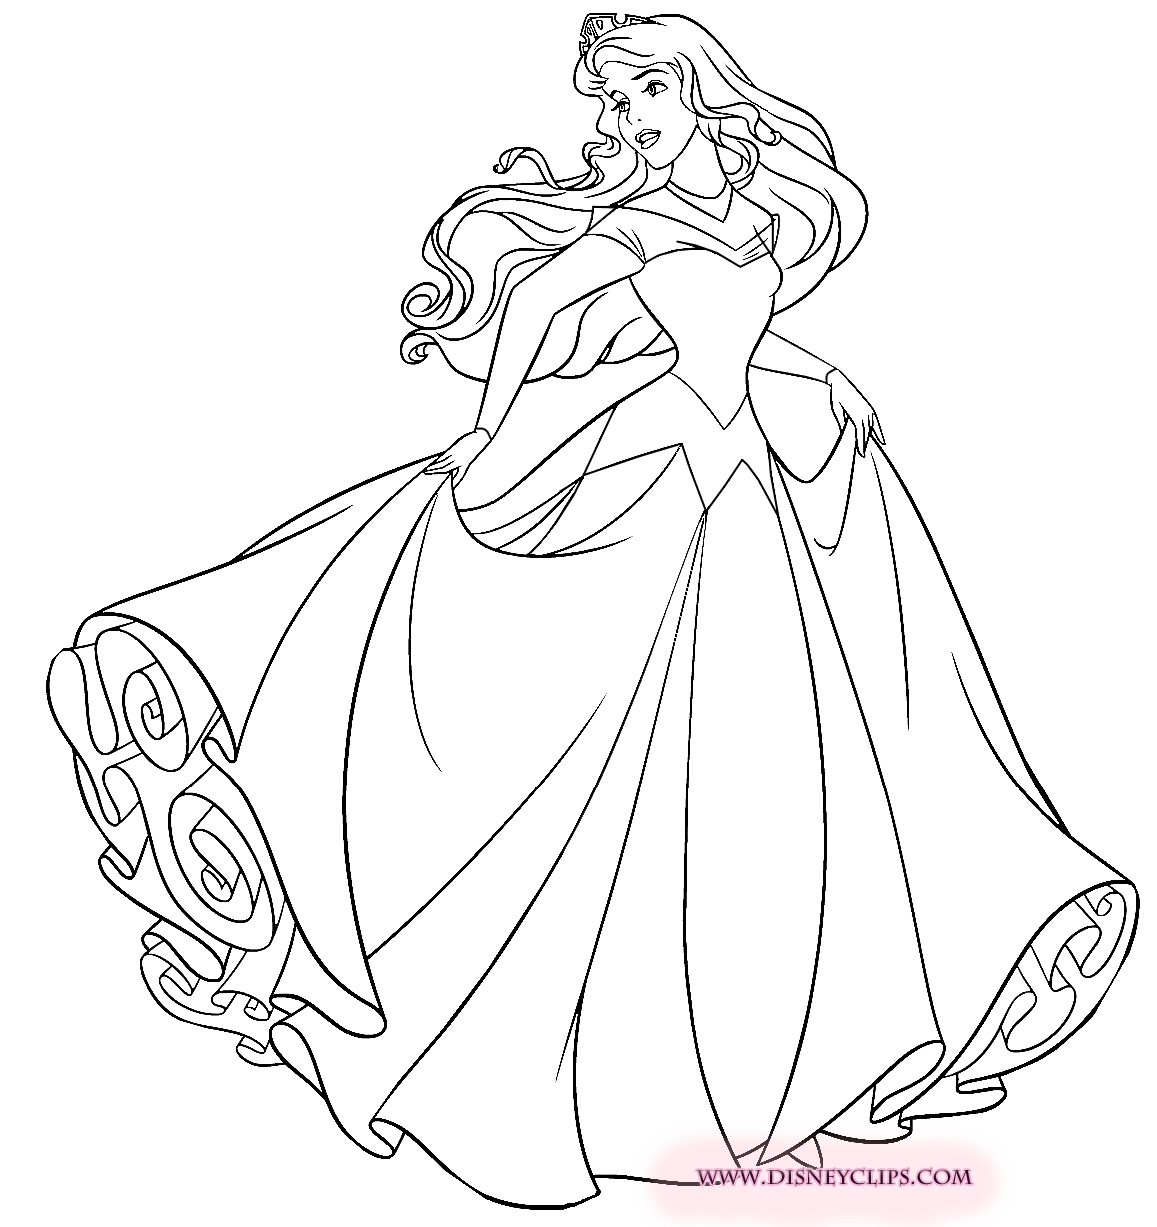 Aurora Coloring Pages - Printable Coloring Pages Aurora Az Coloring Pages